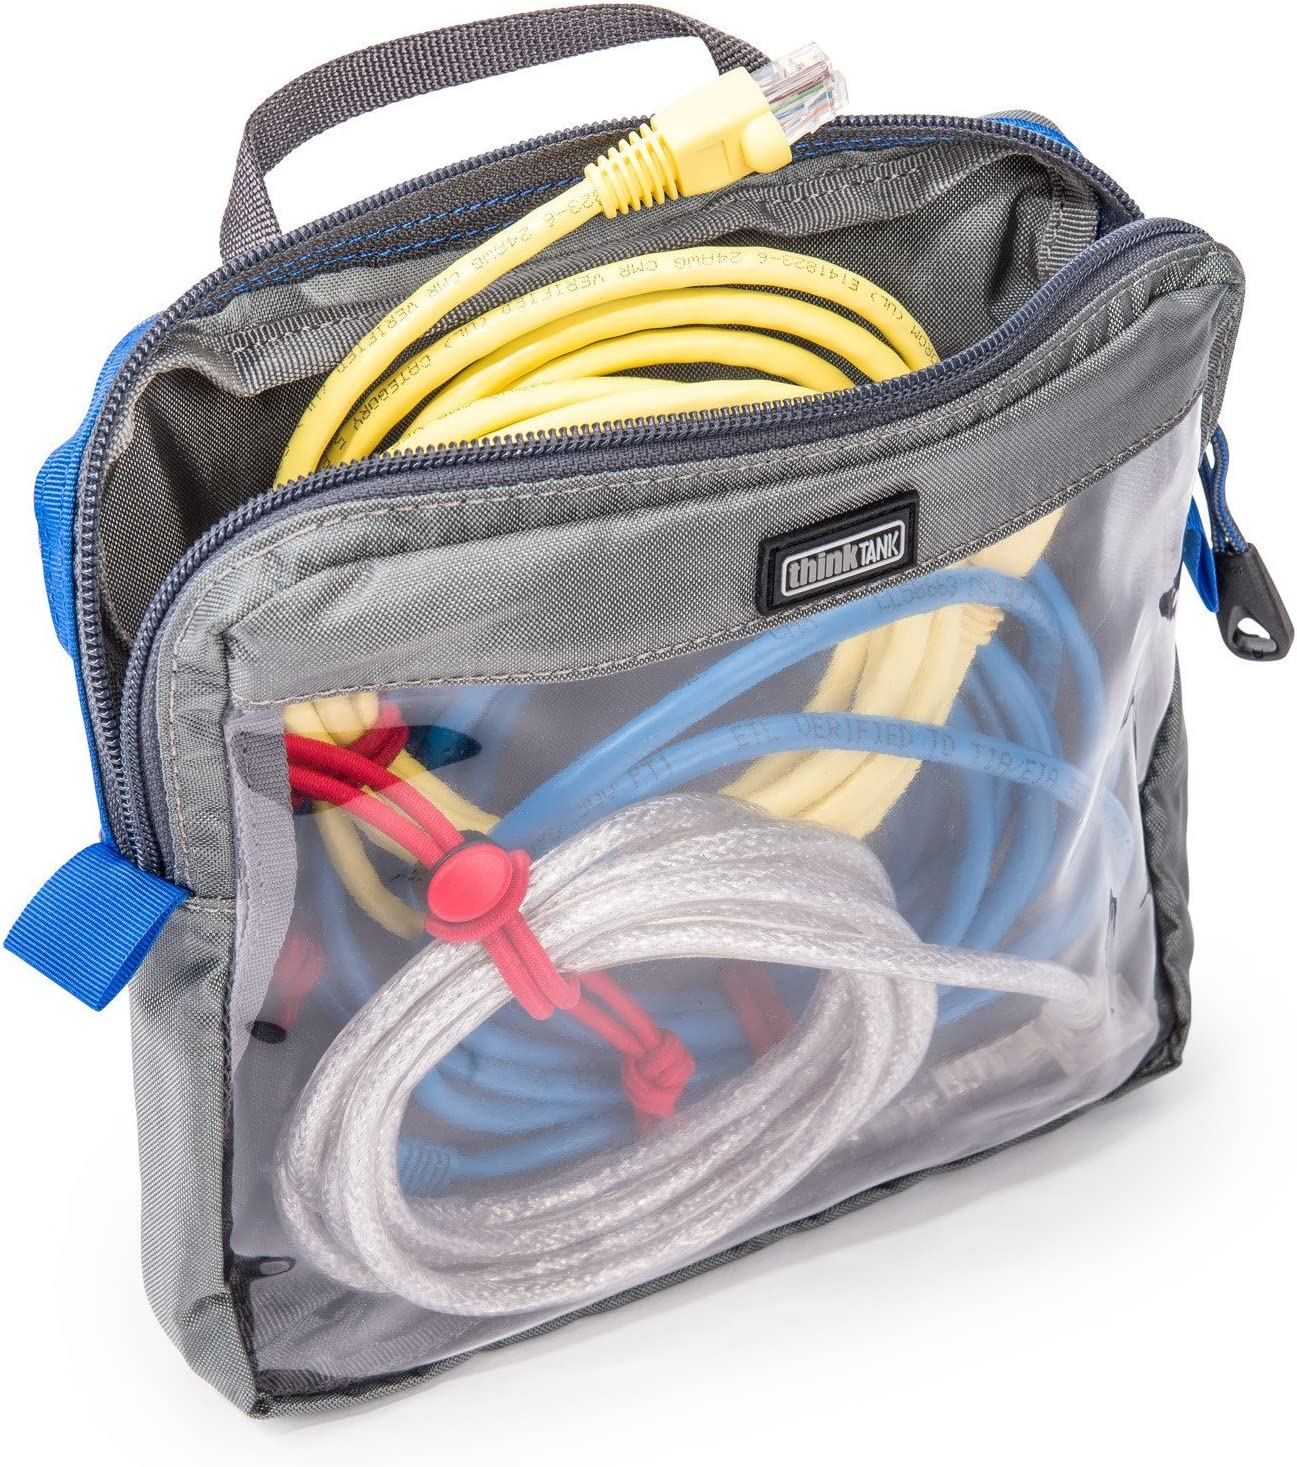 TT-244 Think Tank Cable Management Bag 20 V2.0